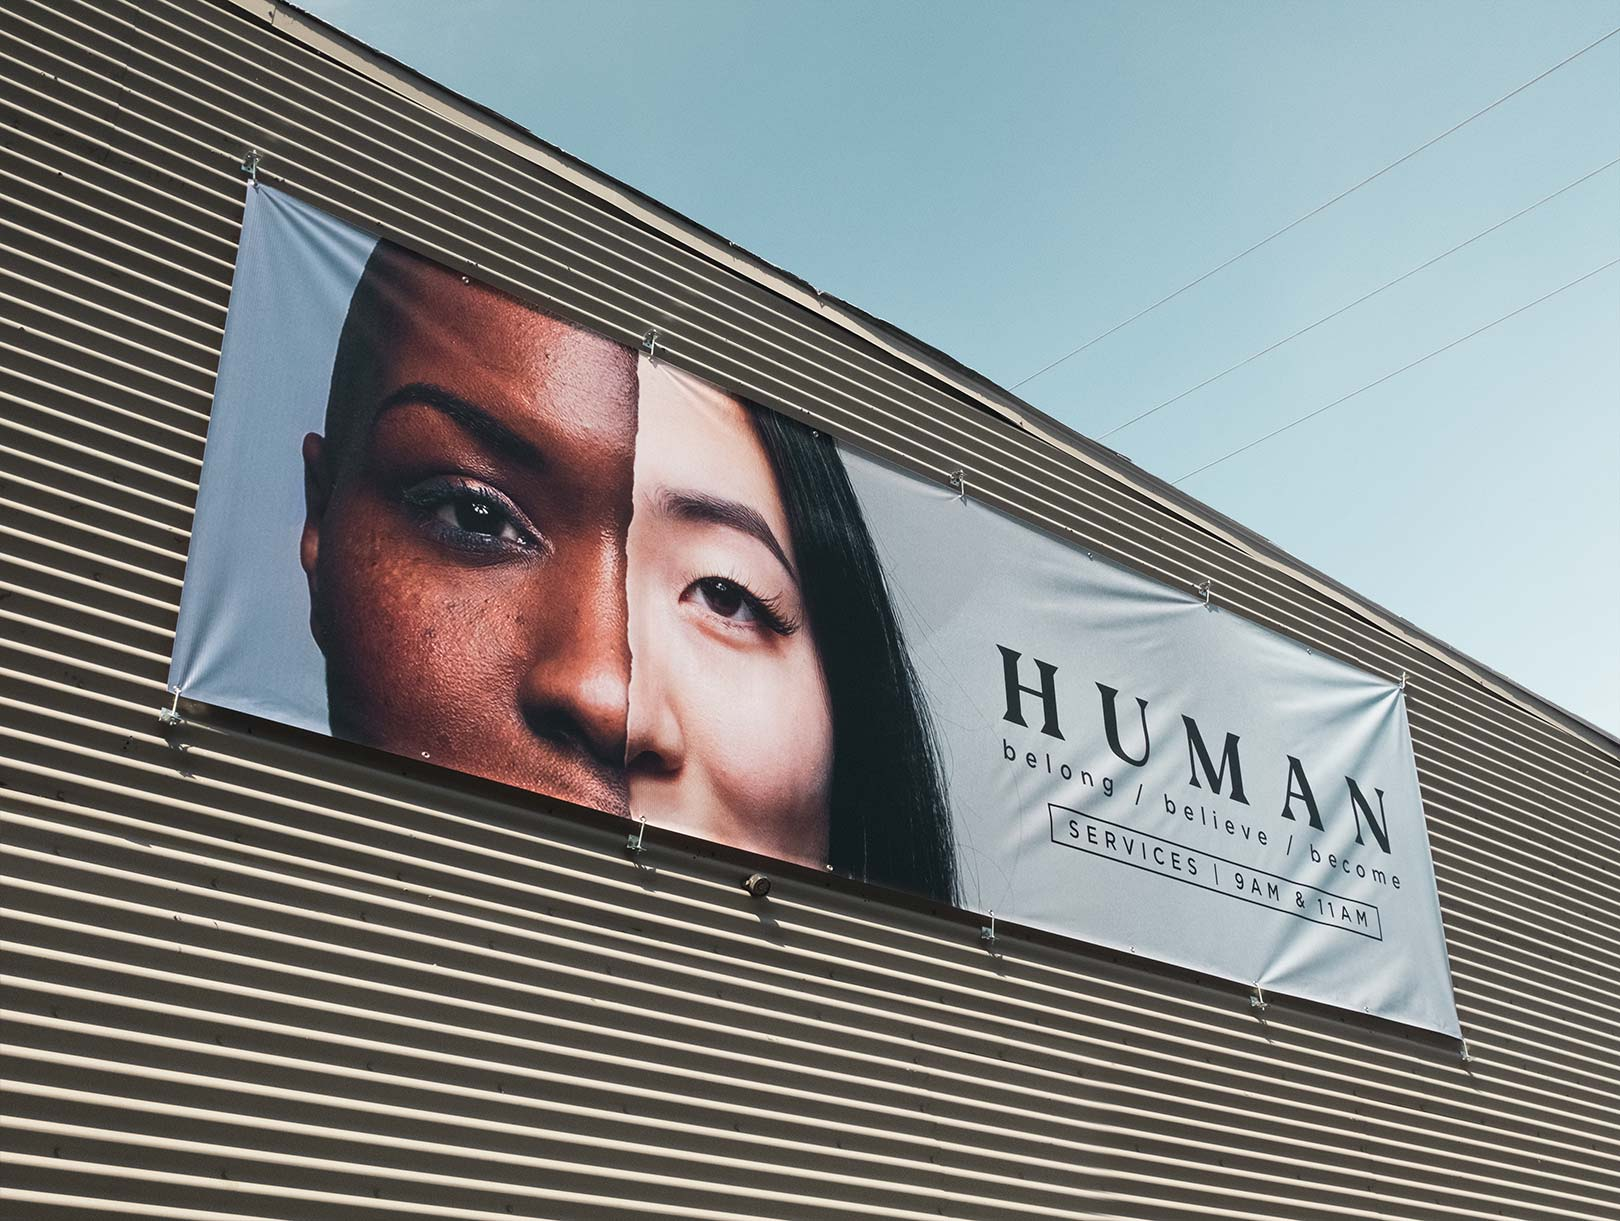 quest-human-banner-website